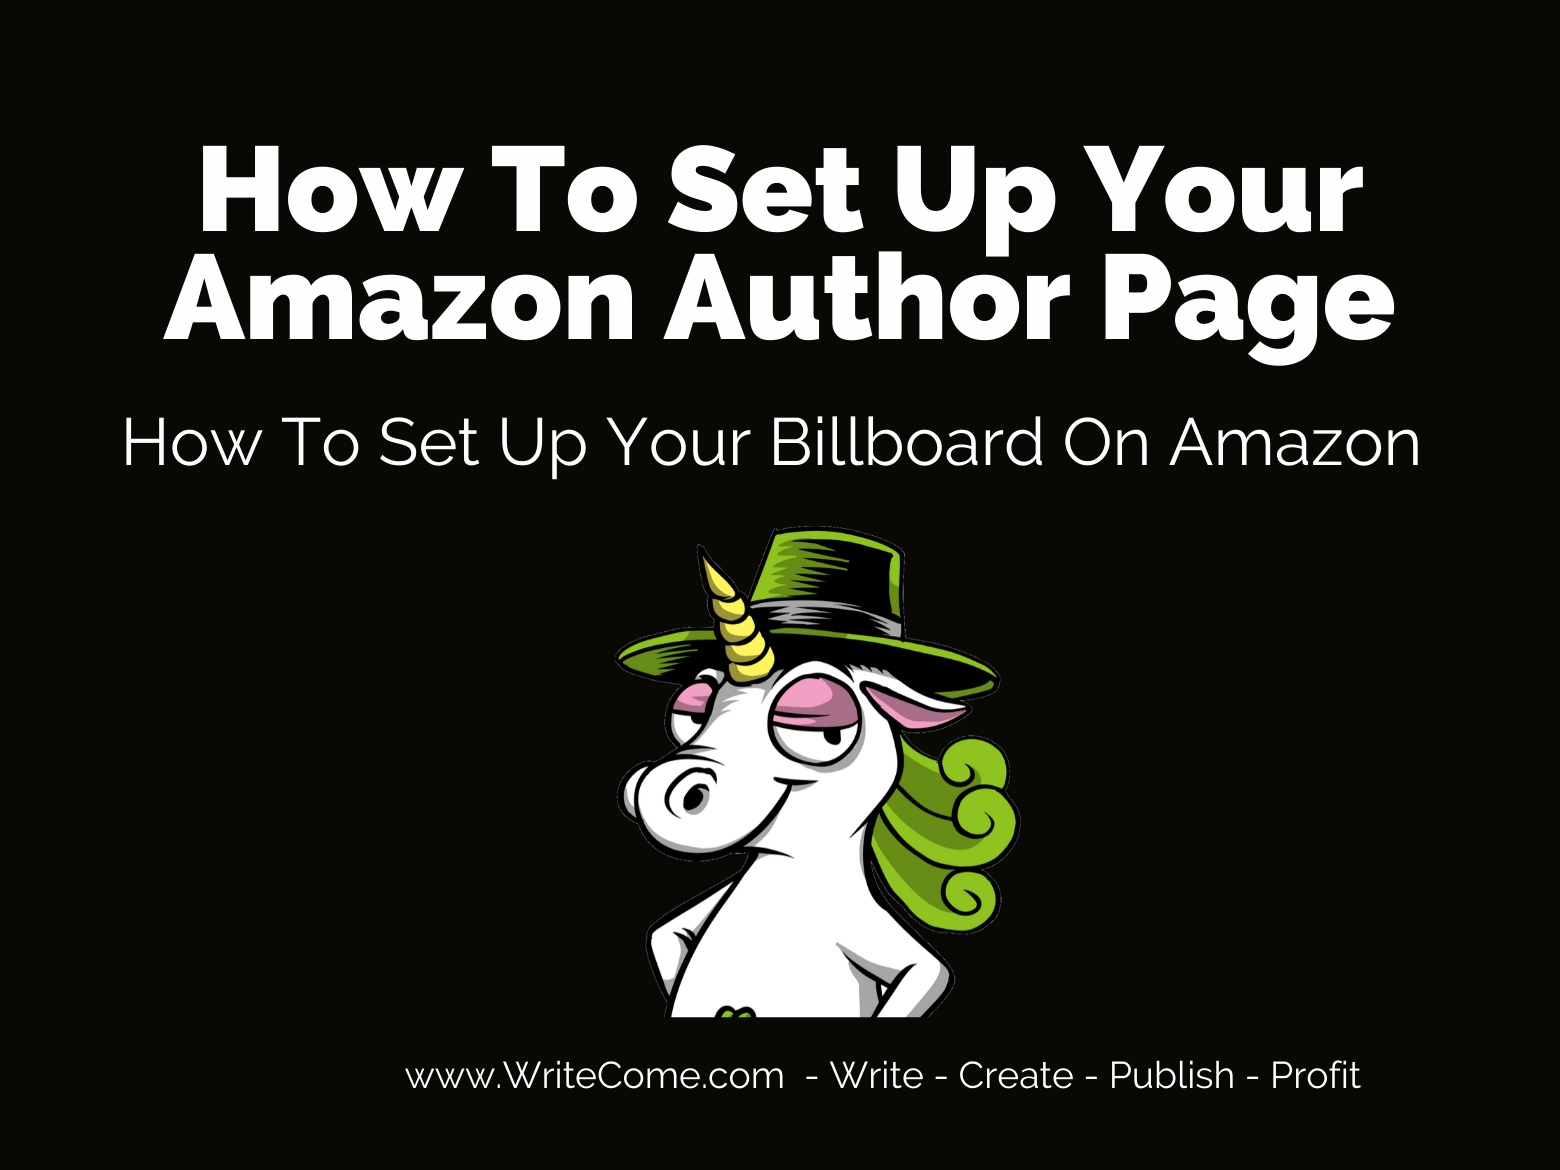 How To Set Up An Amazon Author Page